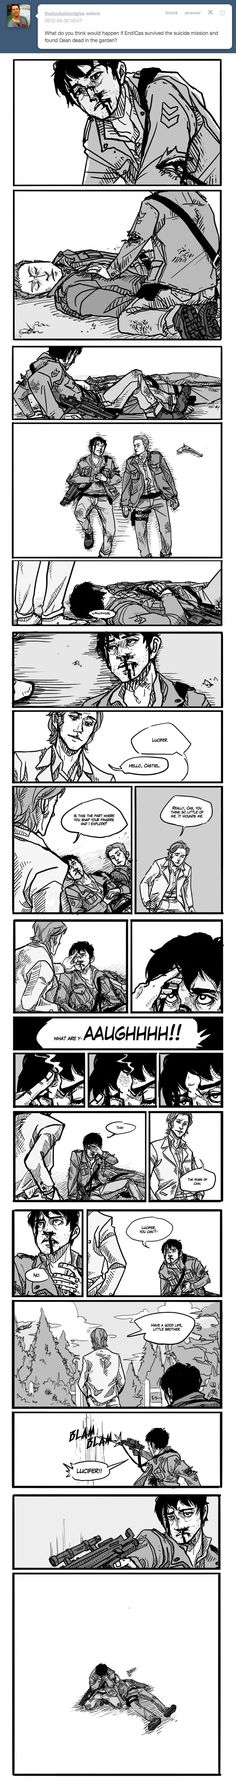 Supernatural fanart. Endverse AU Mark of Cain. OMG the end, but OMG this comic! It's amazing art